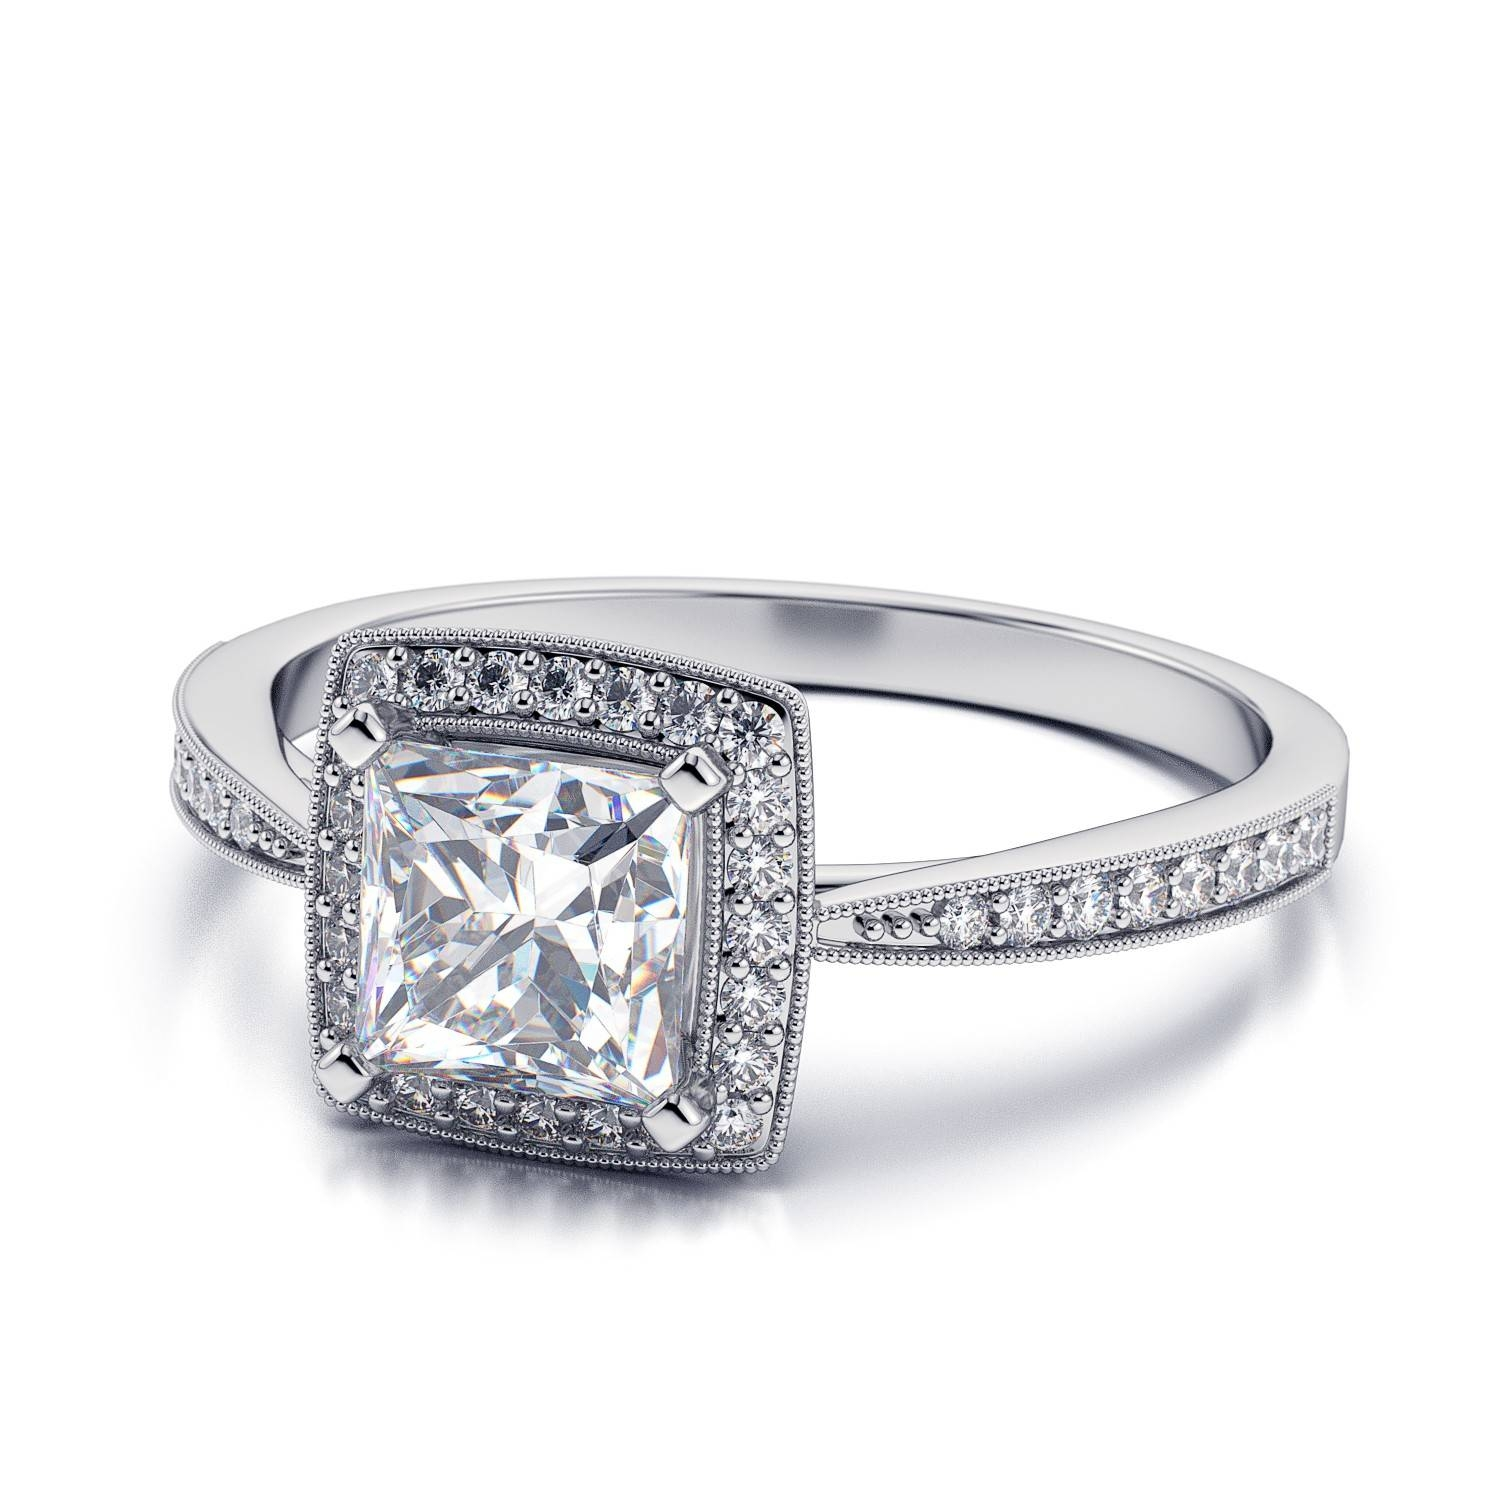 Vintage Cut Engagement Rings | Wedding, Promise, Diamond Regarding Vintage Halo Engagement Ring Settings (View 10 of 15)